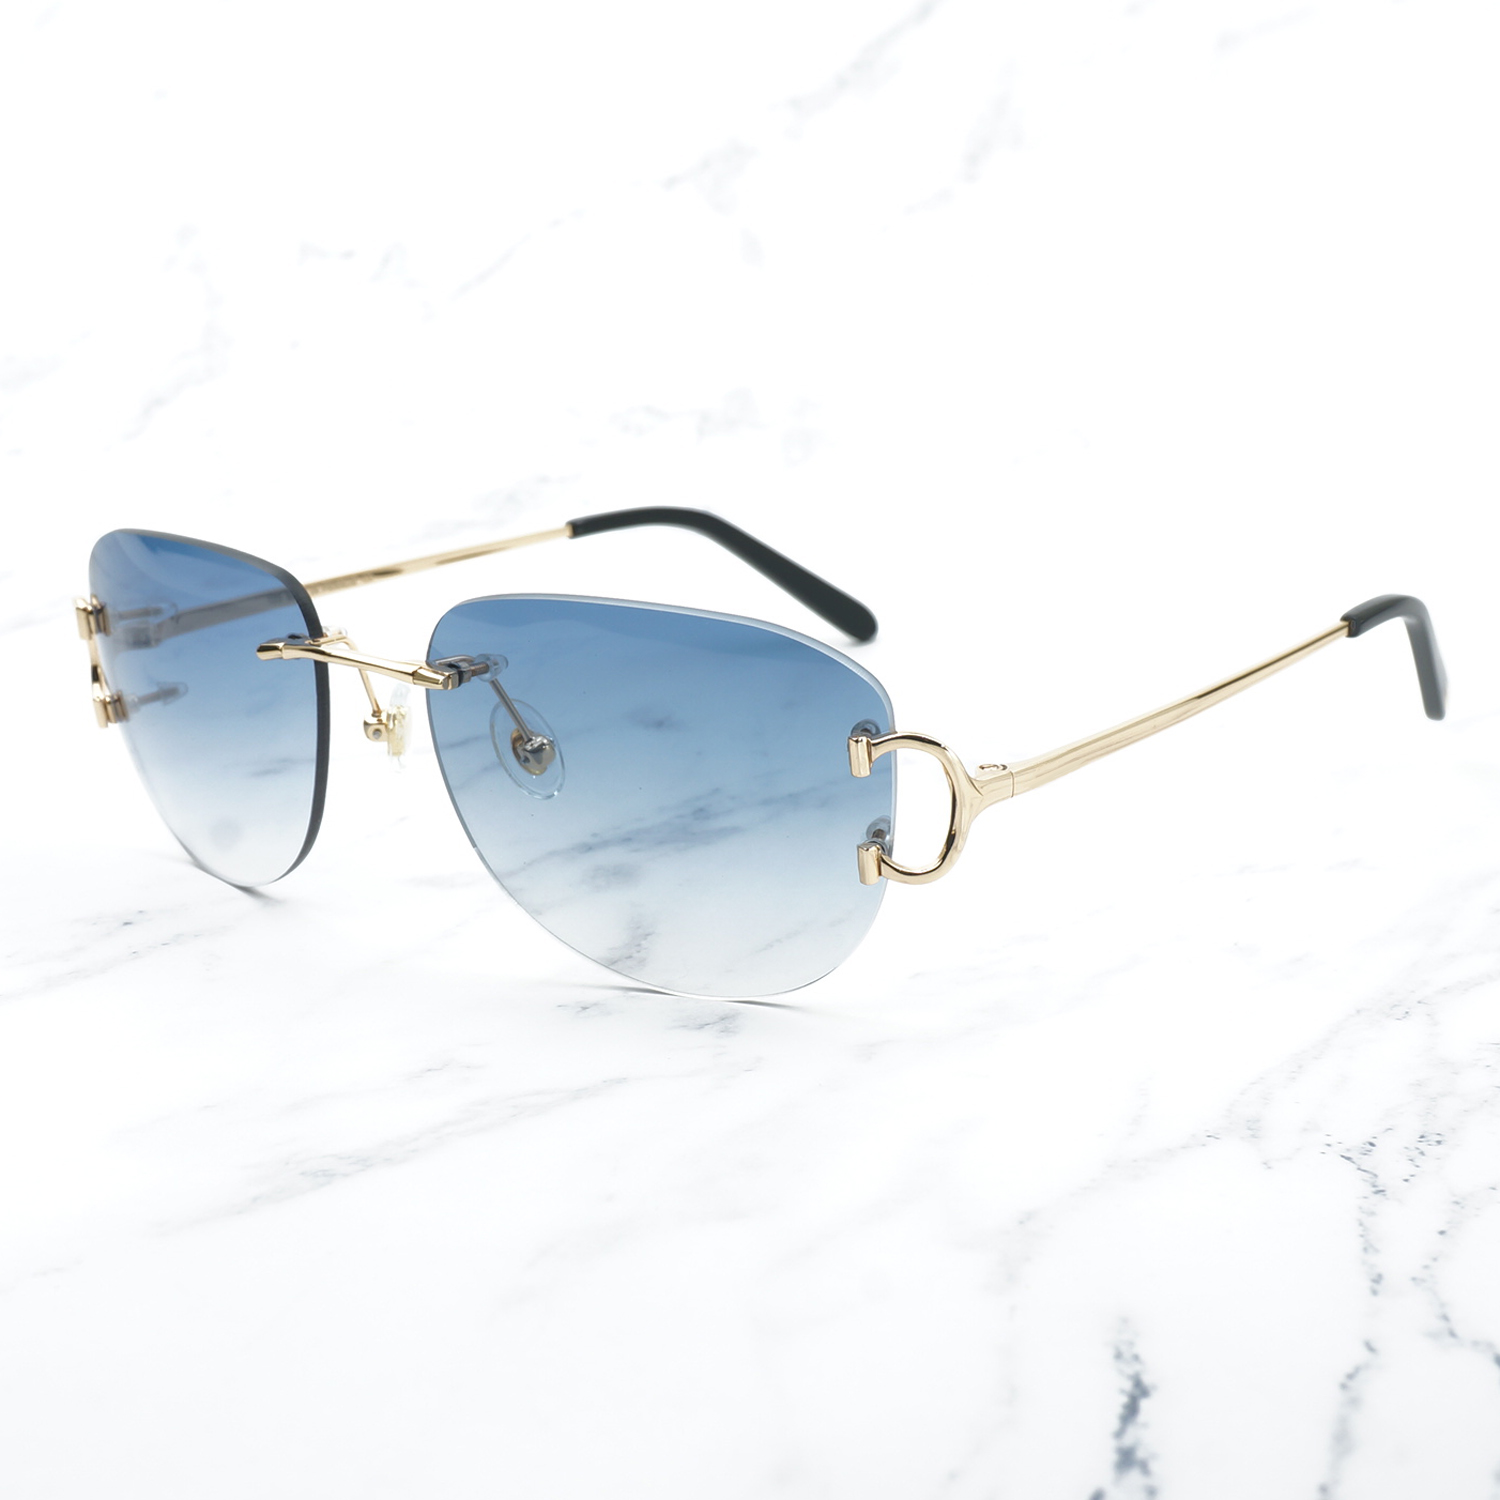 Image 2 - Vintage Pilot Sunglasses for Men Retro Carter Glasses Frame for Women A3 Wholesale Men Sunglass Promotion Female Glass Shades-in Women's Sunglasses from Apparel Accessories